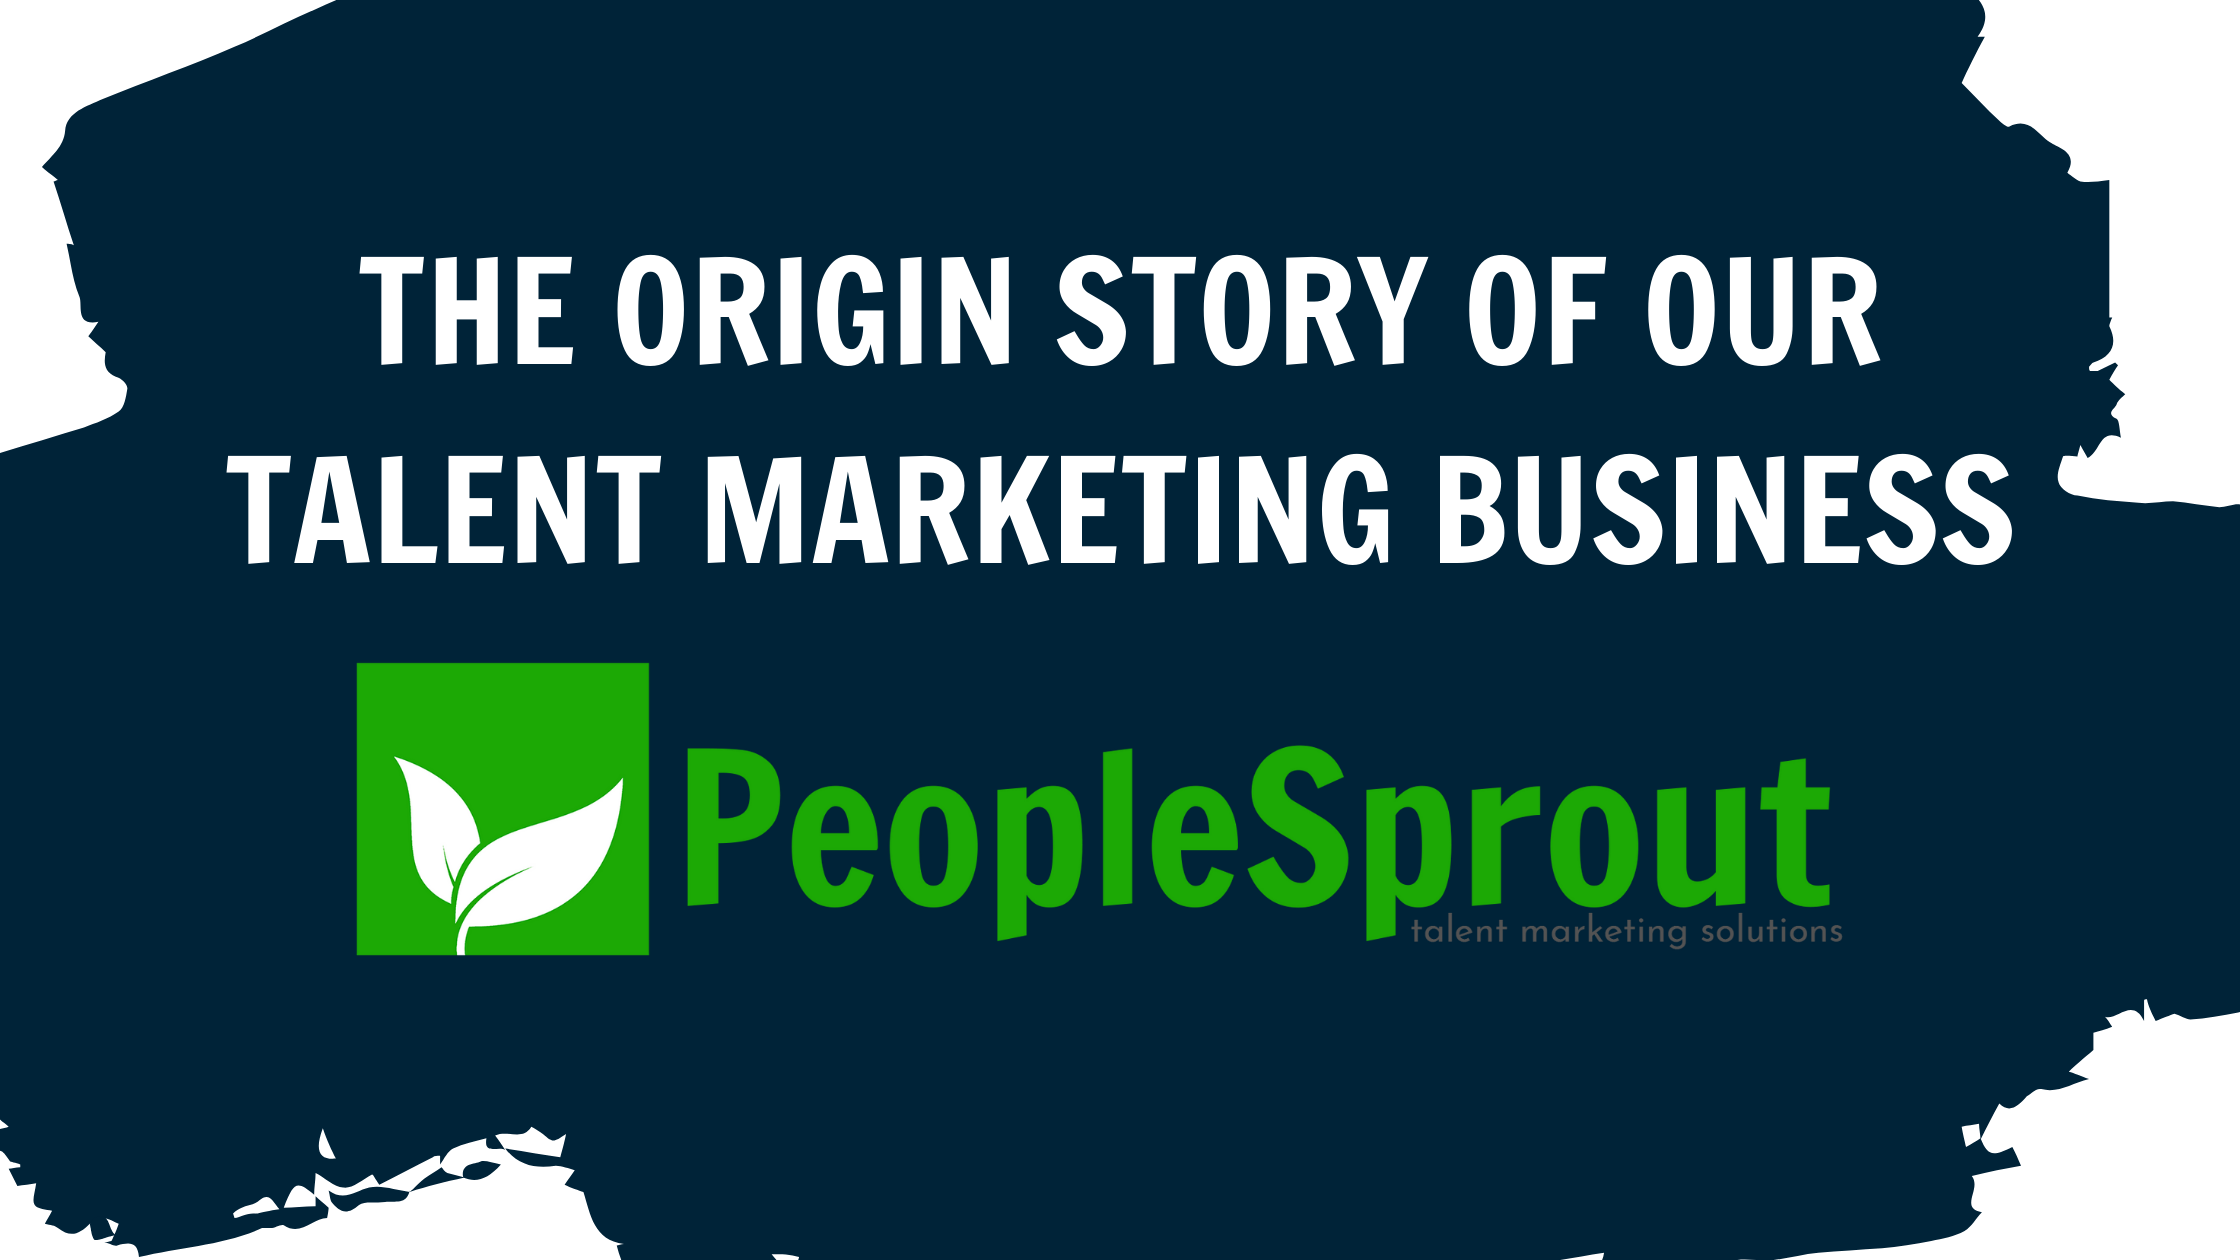 The origin story of PeopleSprout